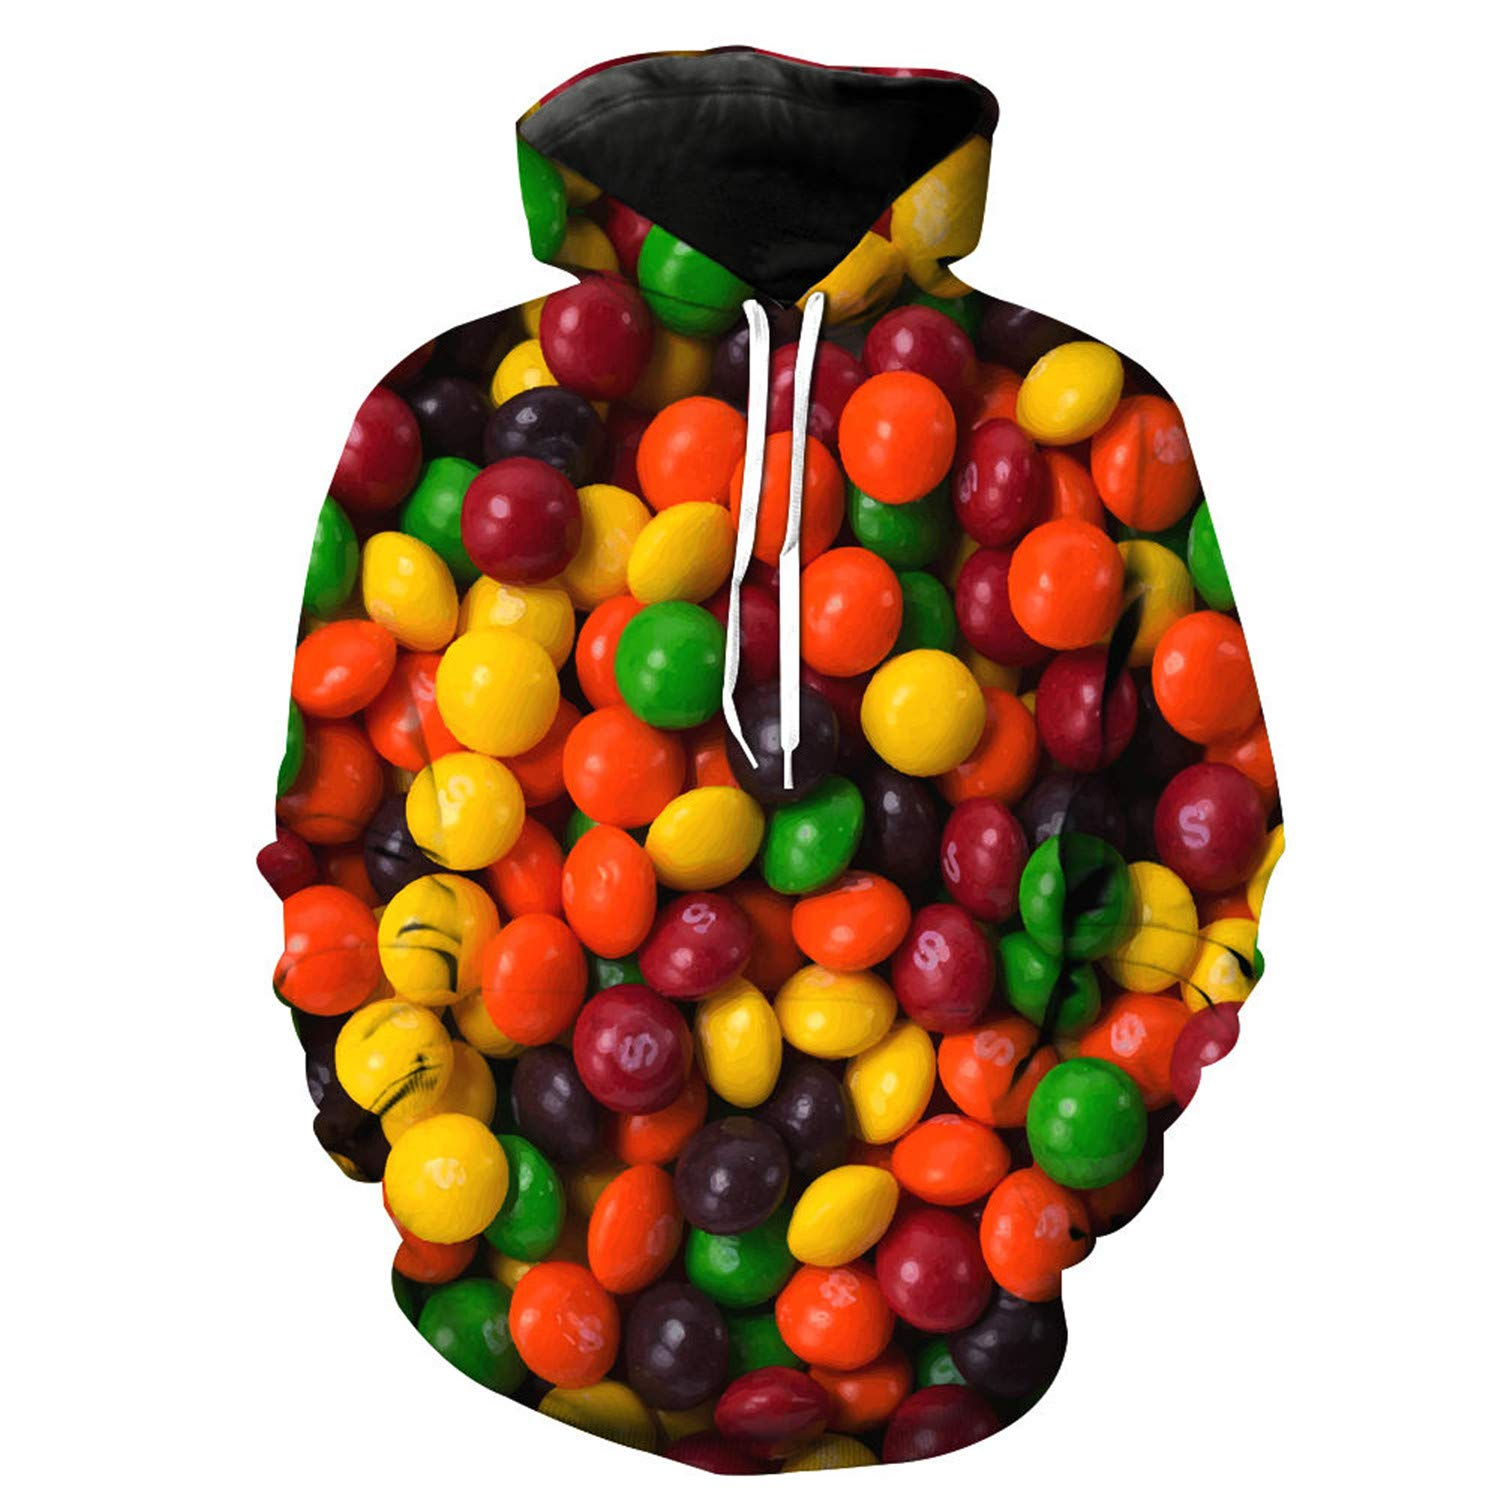 nayingying 3D Hoodies Imprimir Alimentos Dulces Delicioso Delgado Con Estilo Delgado Hoodies at Amazon Mens Clothing store: